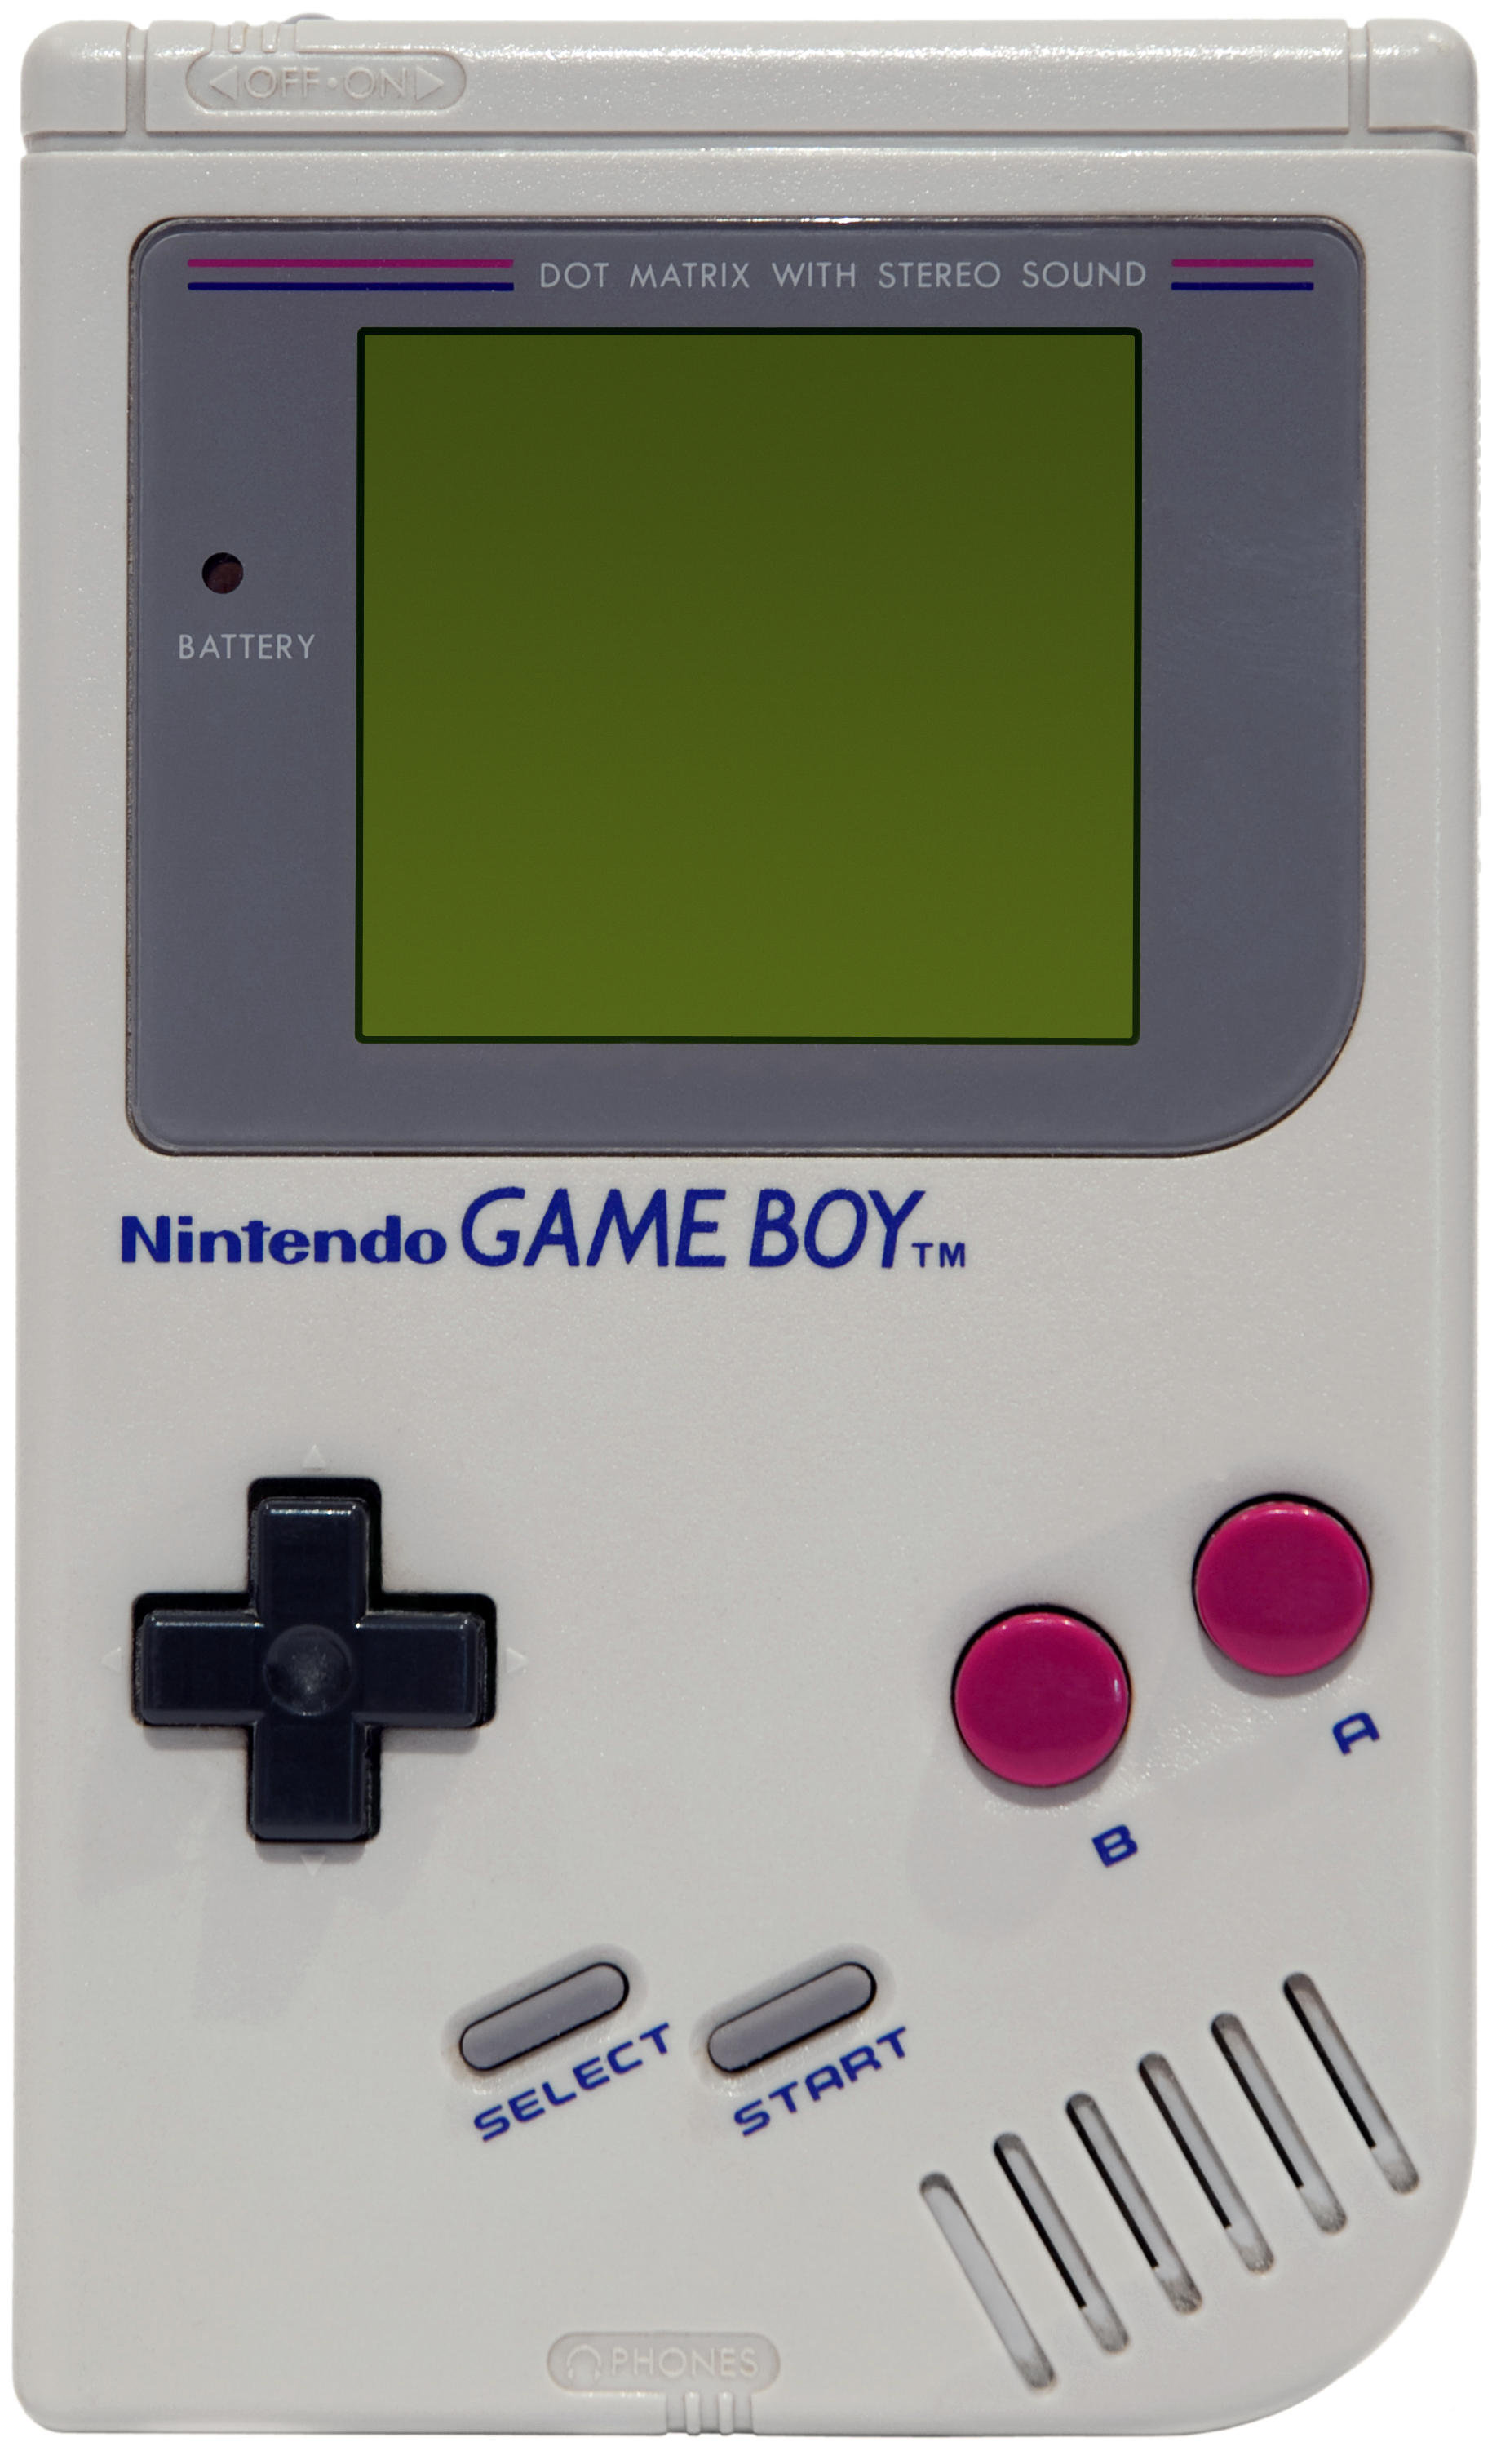 https://i1.wp.com/upload.wikimedia.org/wikipedia/commons/c/c6/Nintendo_Gameboy.jpg